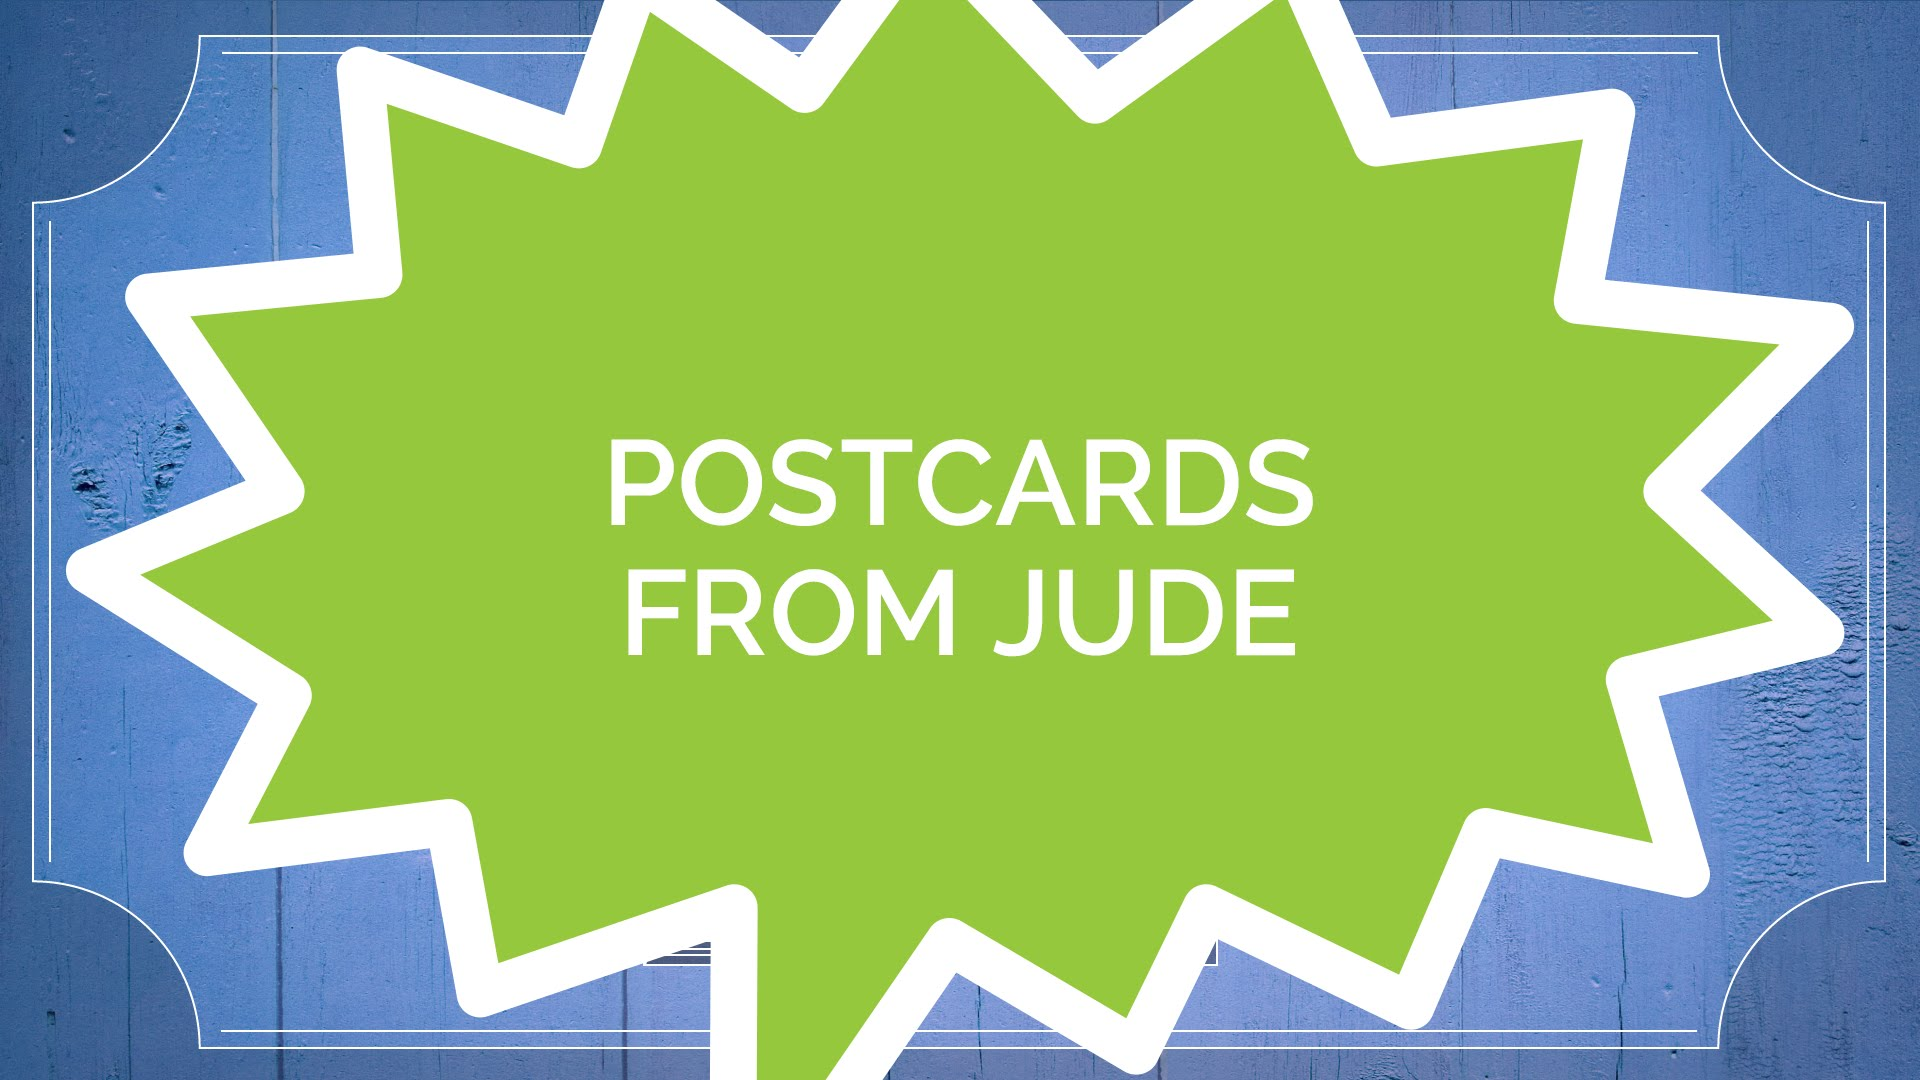 The Book of Jude #1: Postcards from Jude (Kids)